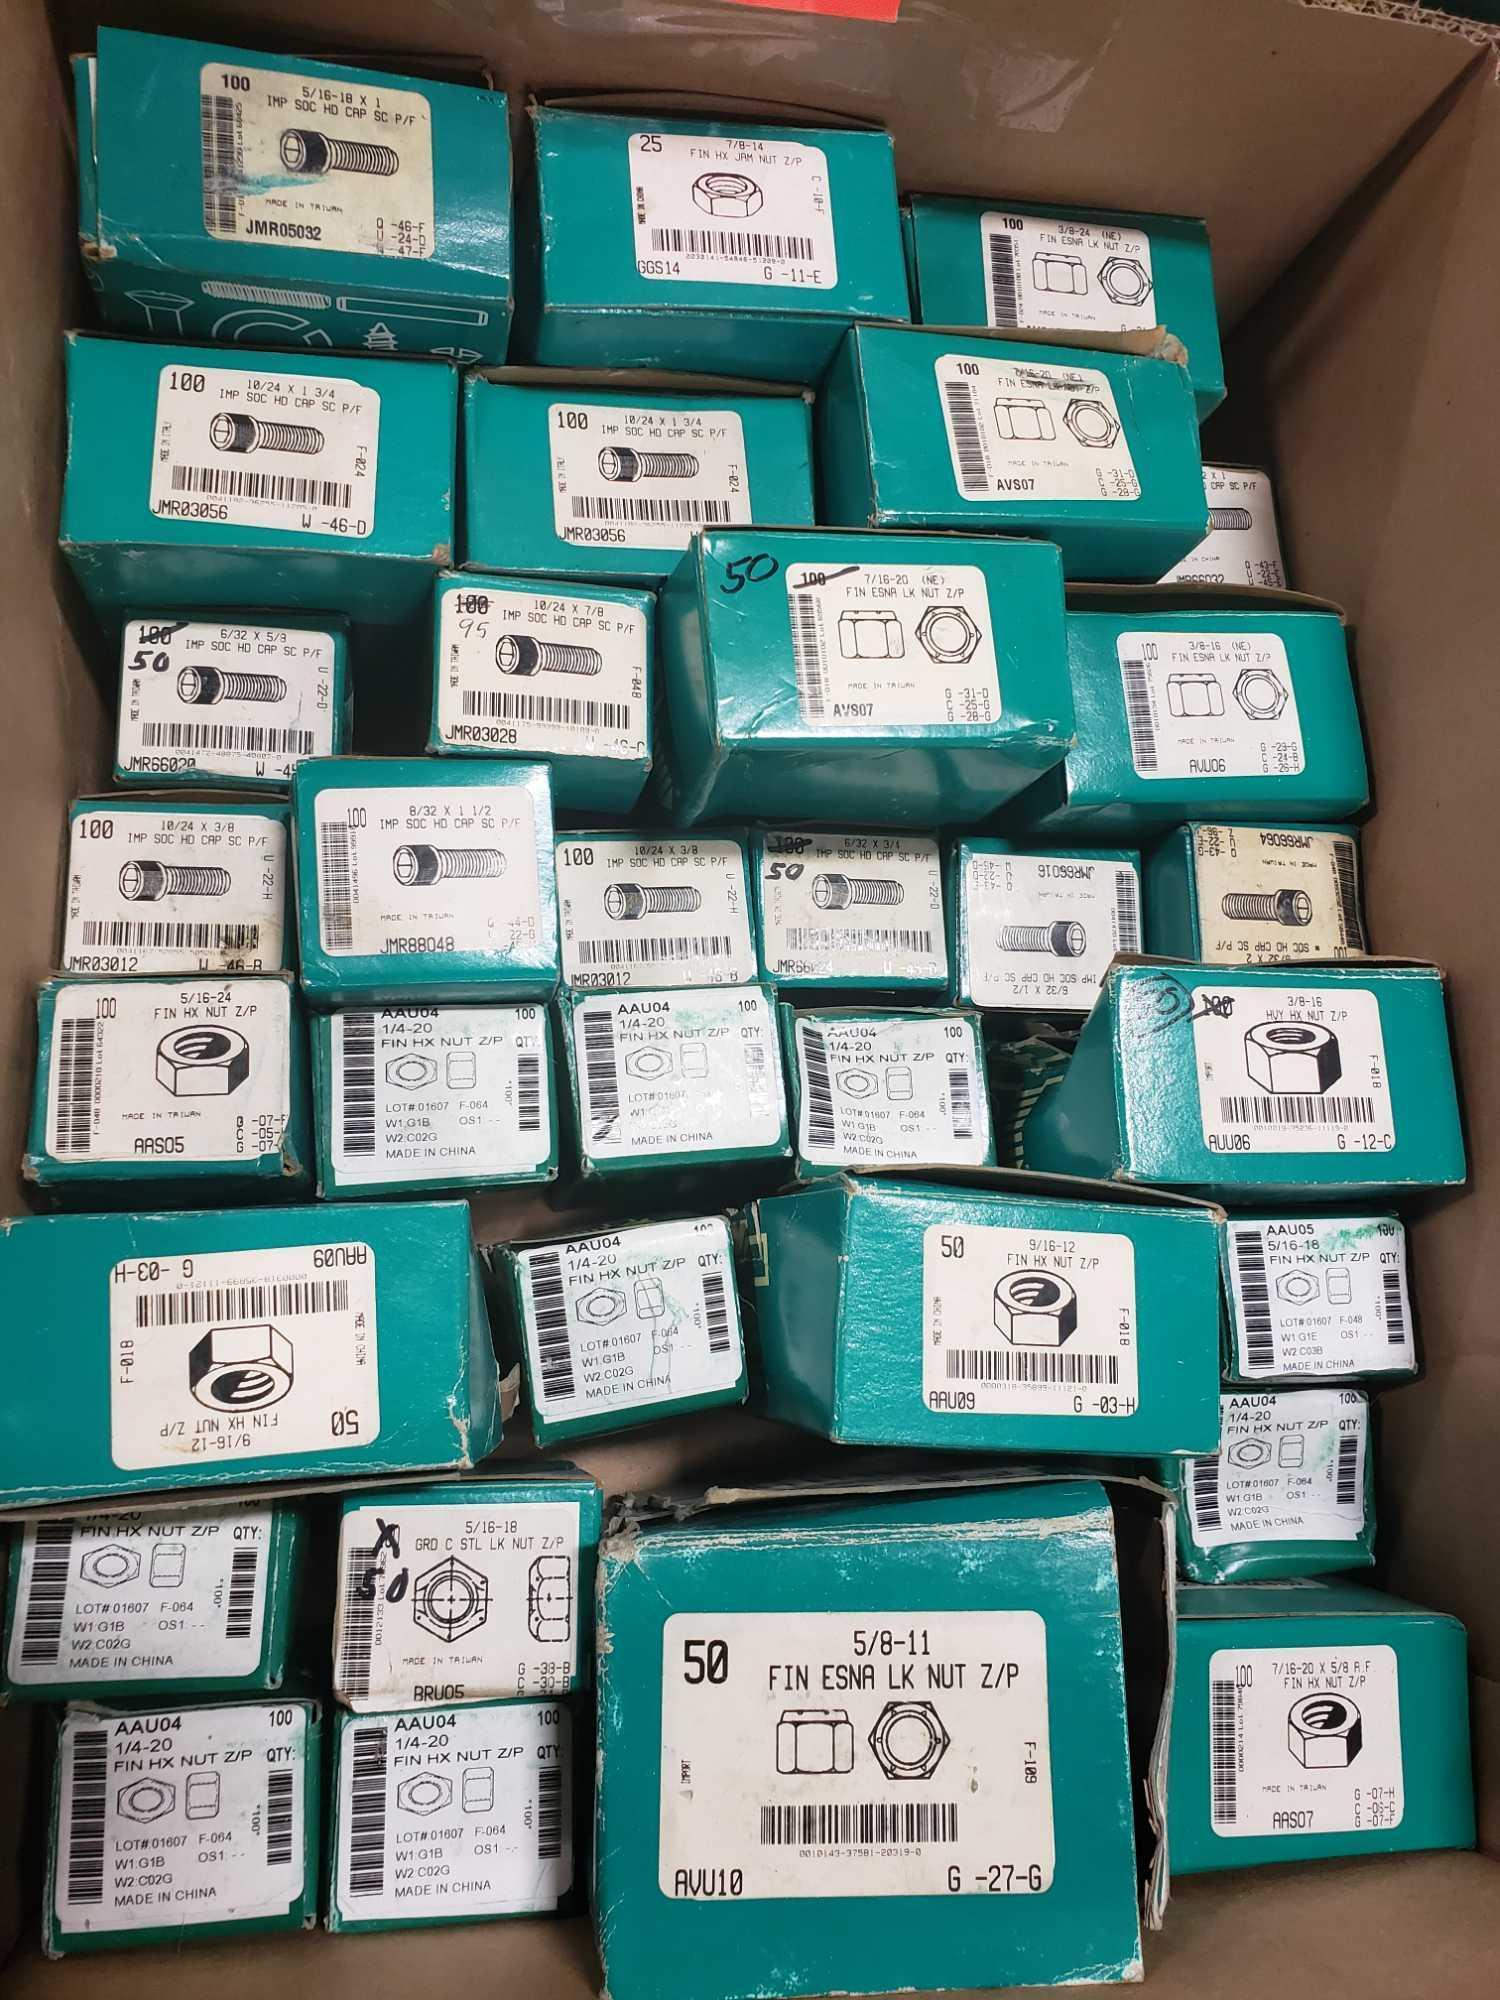 Qty 33 - Assorted boxes of new hardware, high grade, nuts, bolts, washers, etc. New in box. - Image 2 of 2